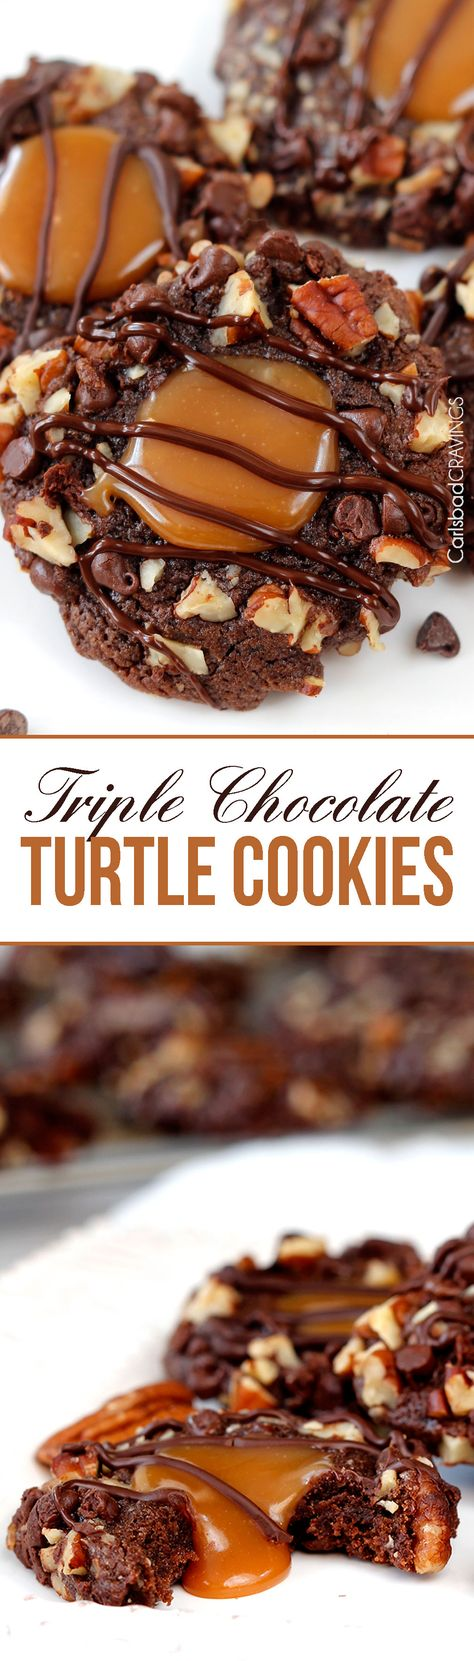 Soft Triple Chocolate Turtle Cookies rolled in mini chocolate chips and pecans then filled with creamy, silky caramel and drizzled with chocolate. AKA heaven. #turtlecookies #pecancookies #chocolatecookies #caramelcookies